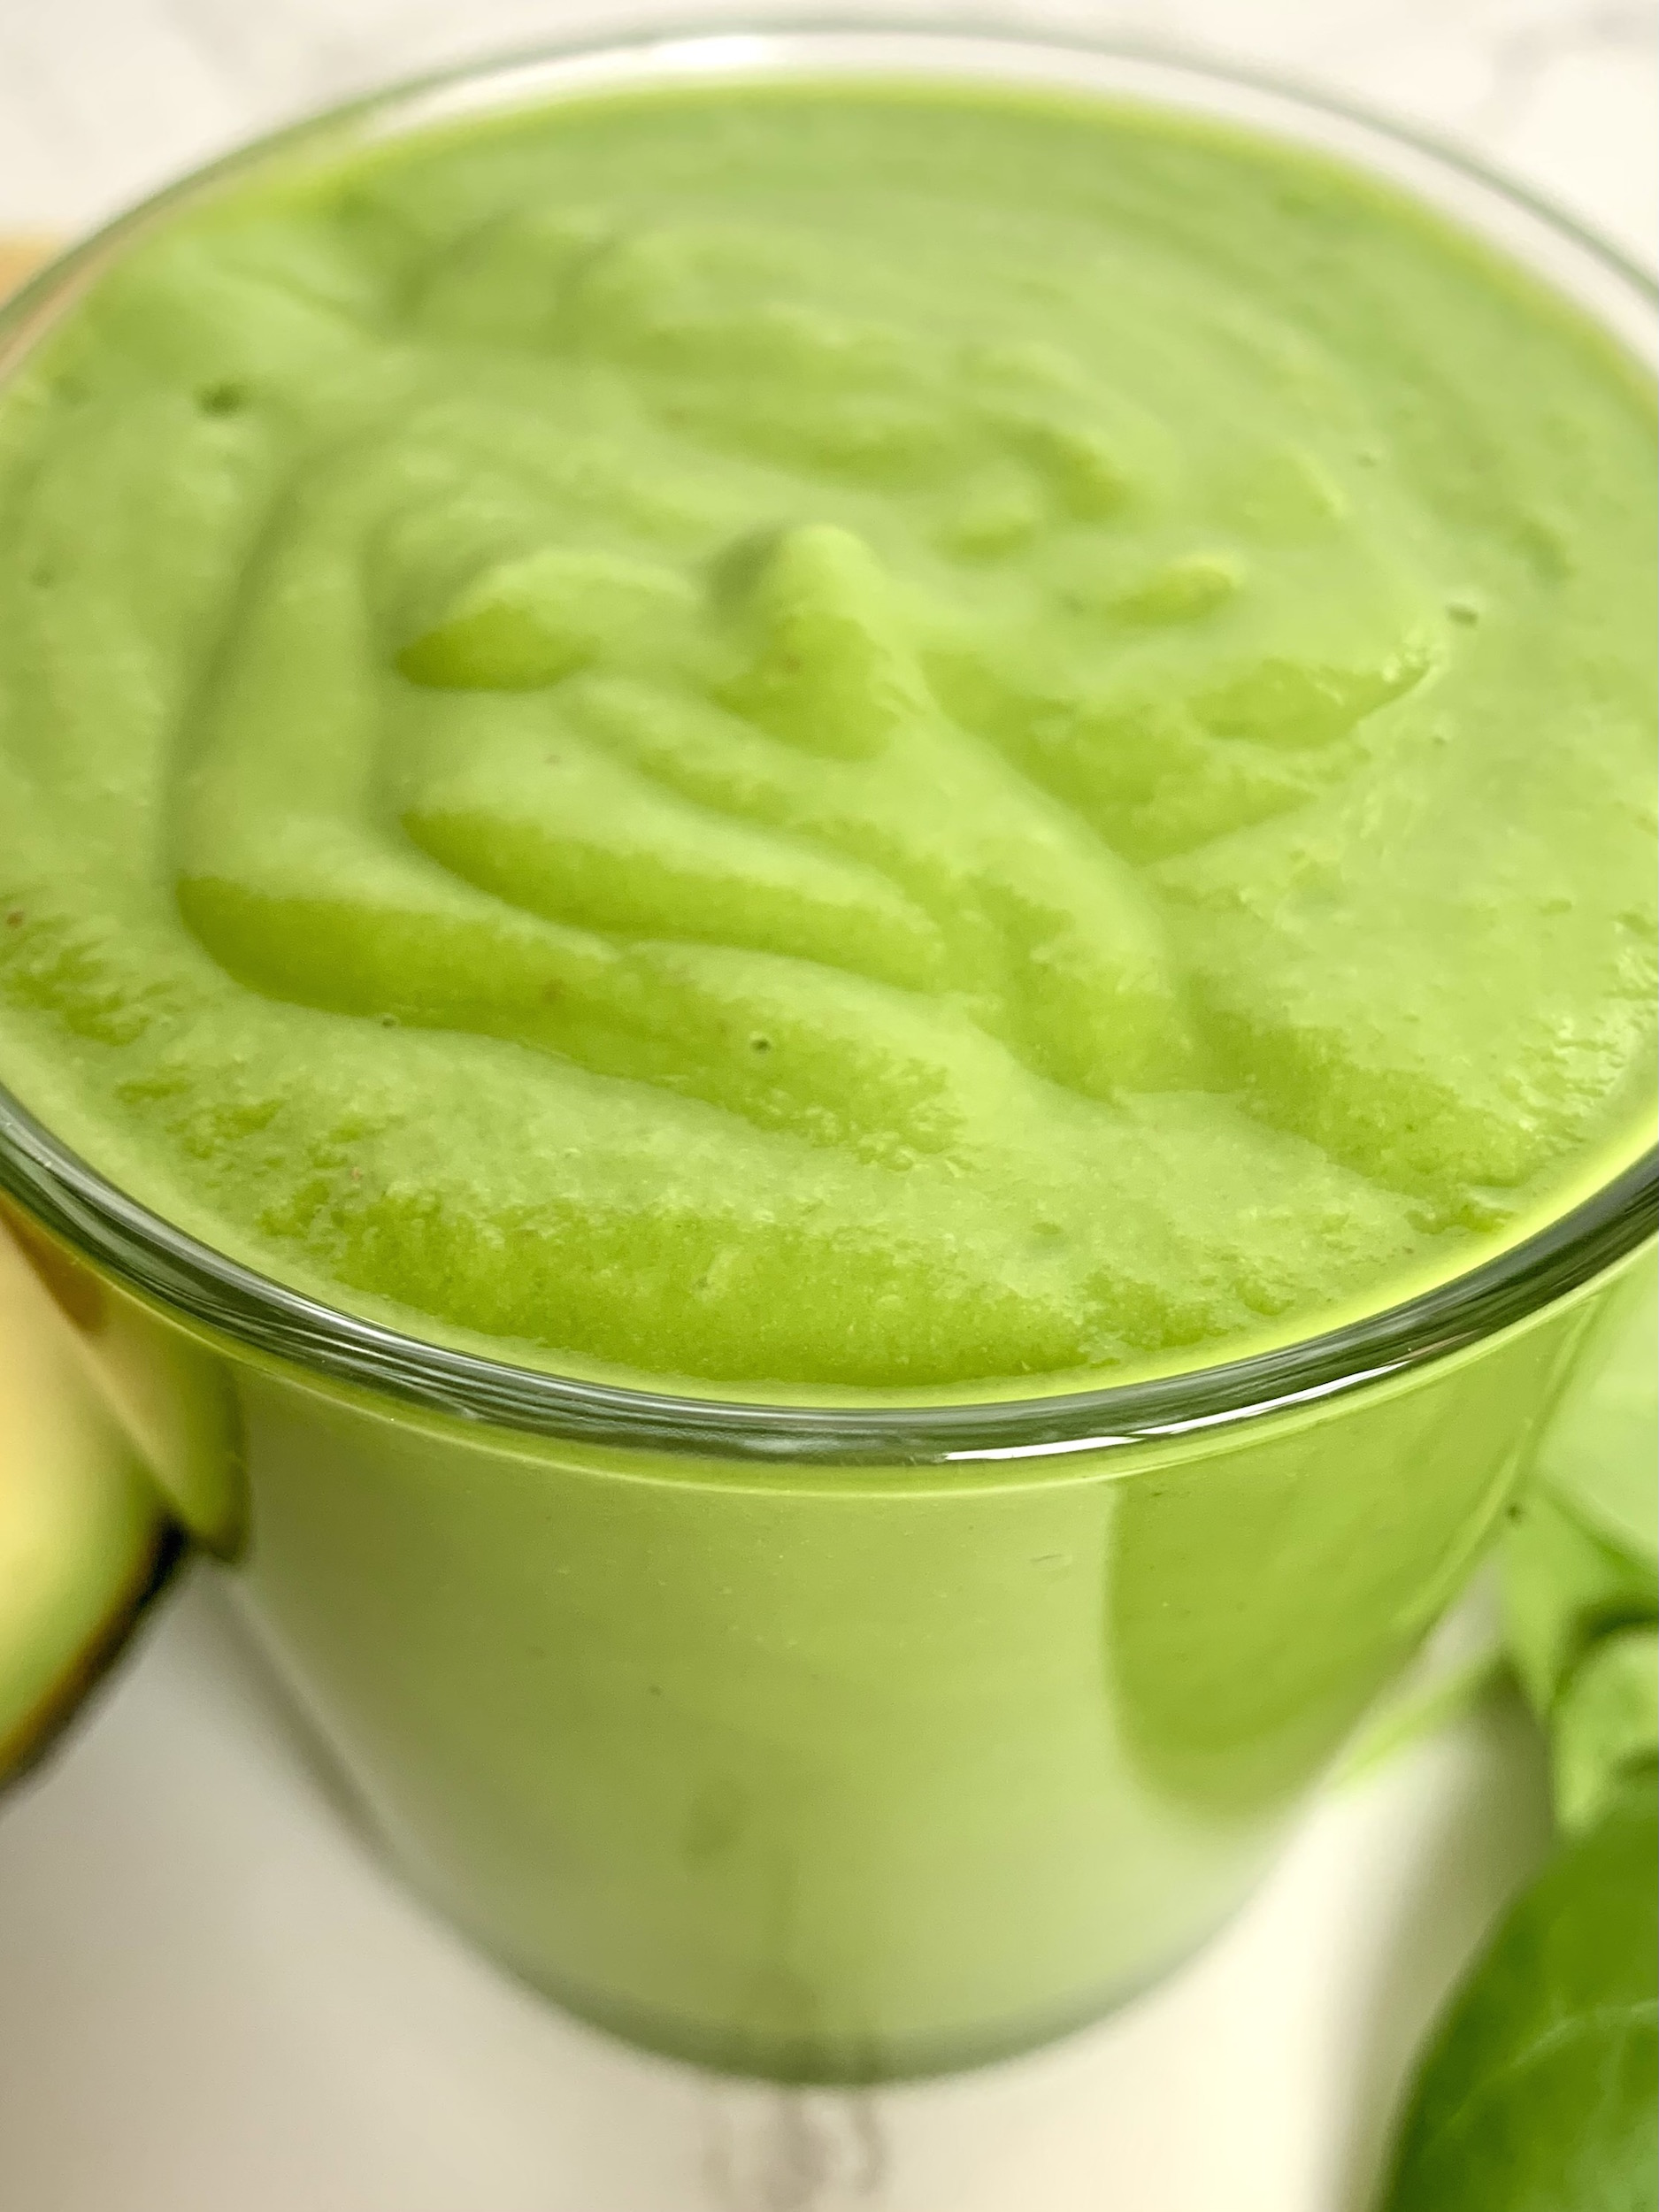 Close up of glass full of green machine smoothie